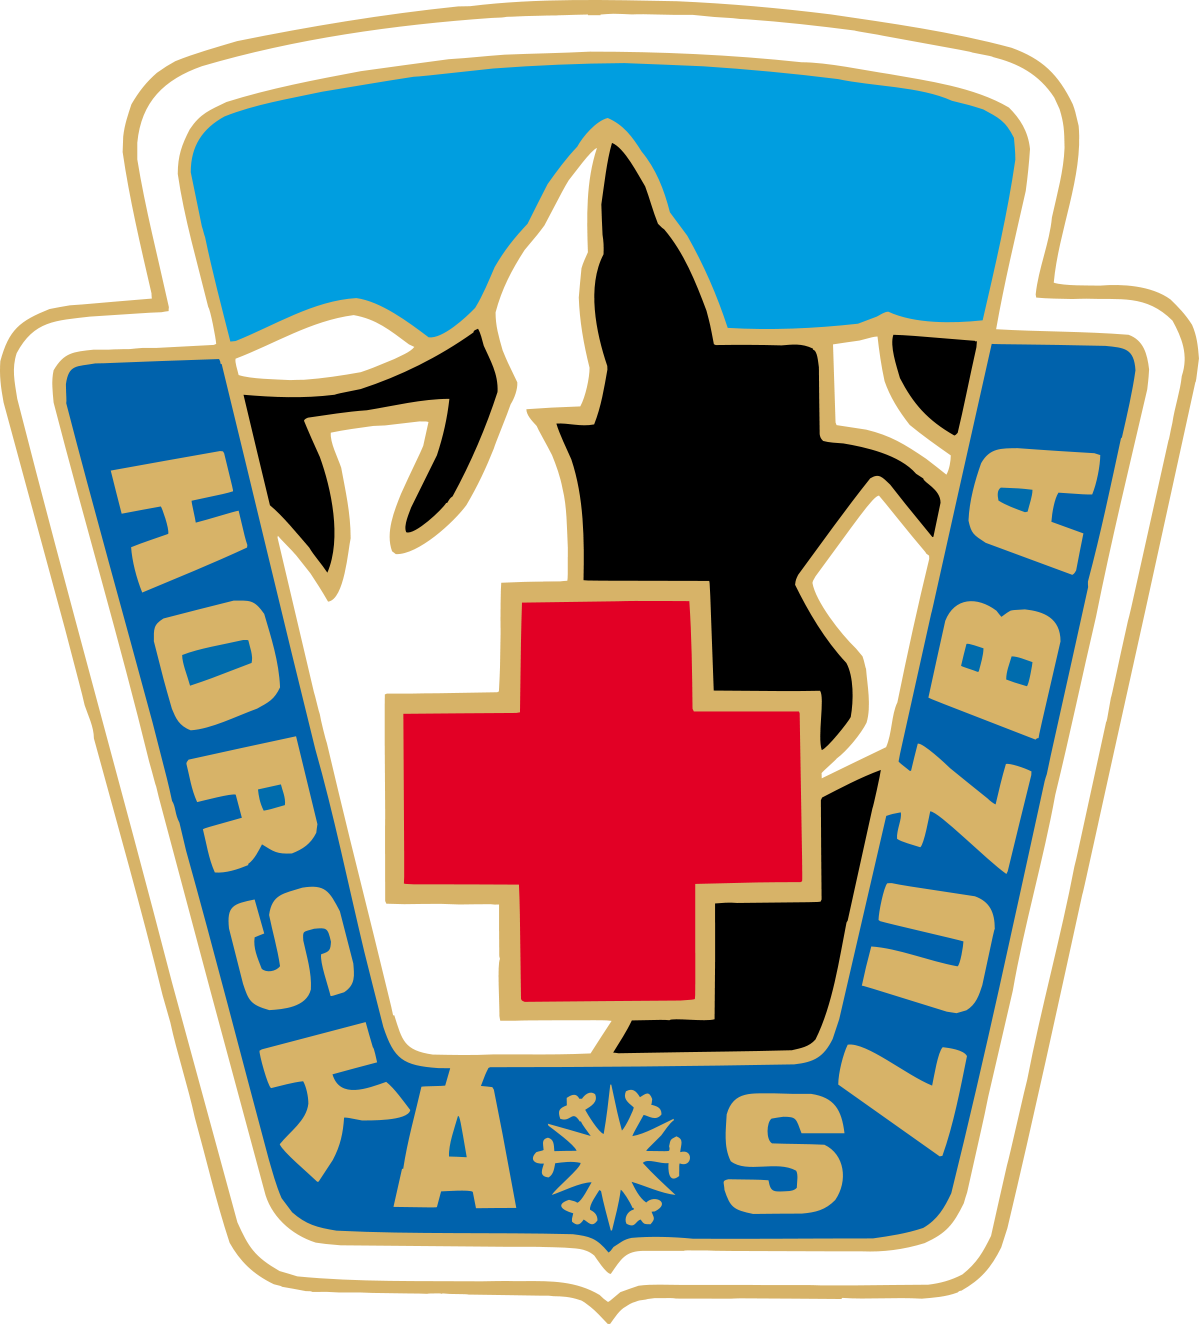 Mountain Rescue Service of the Czech Republic.